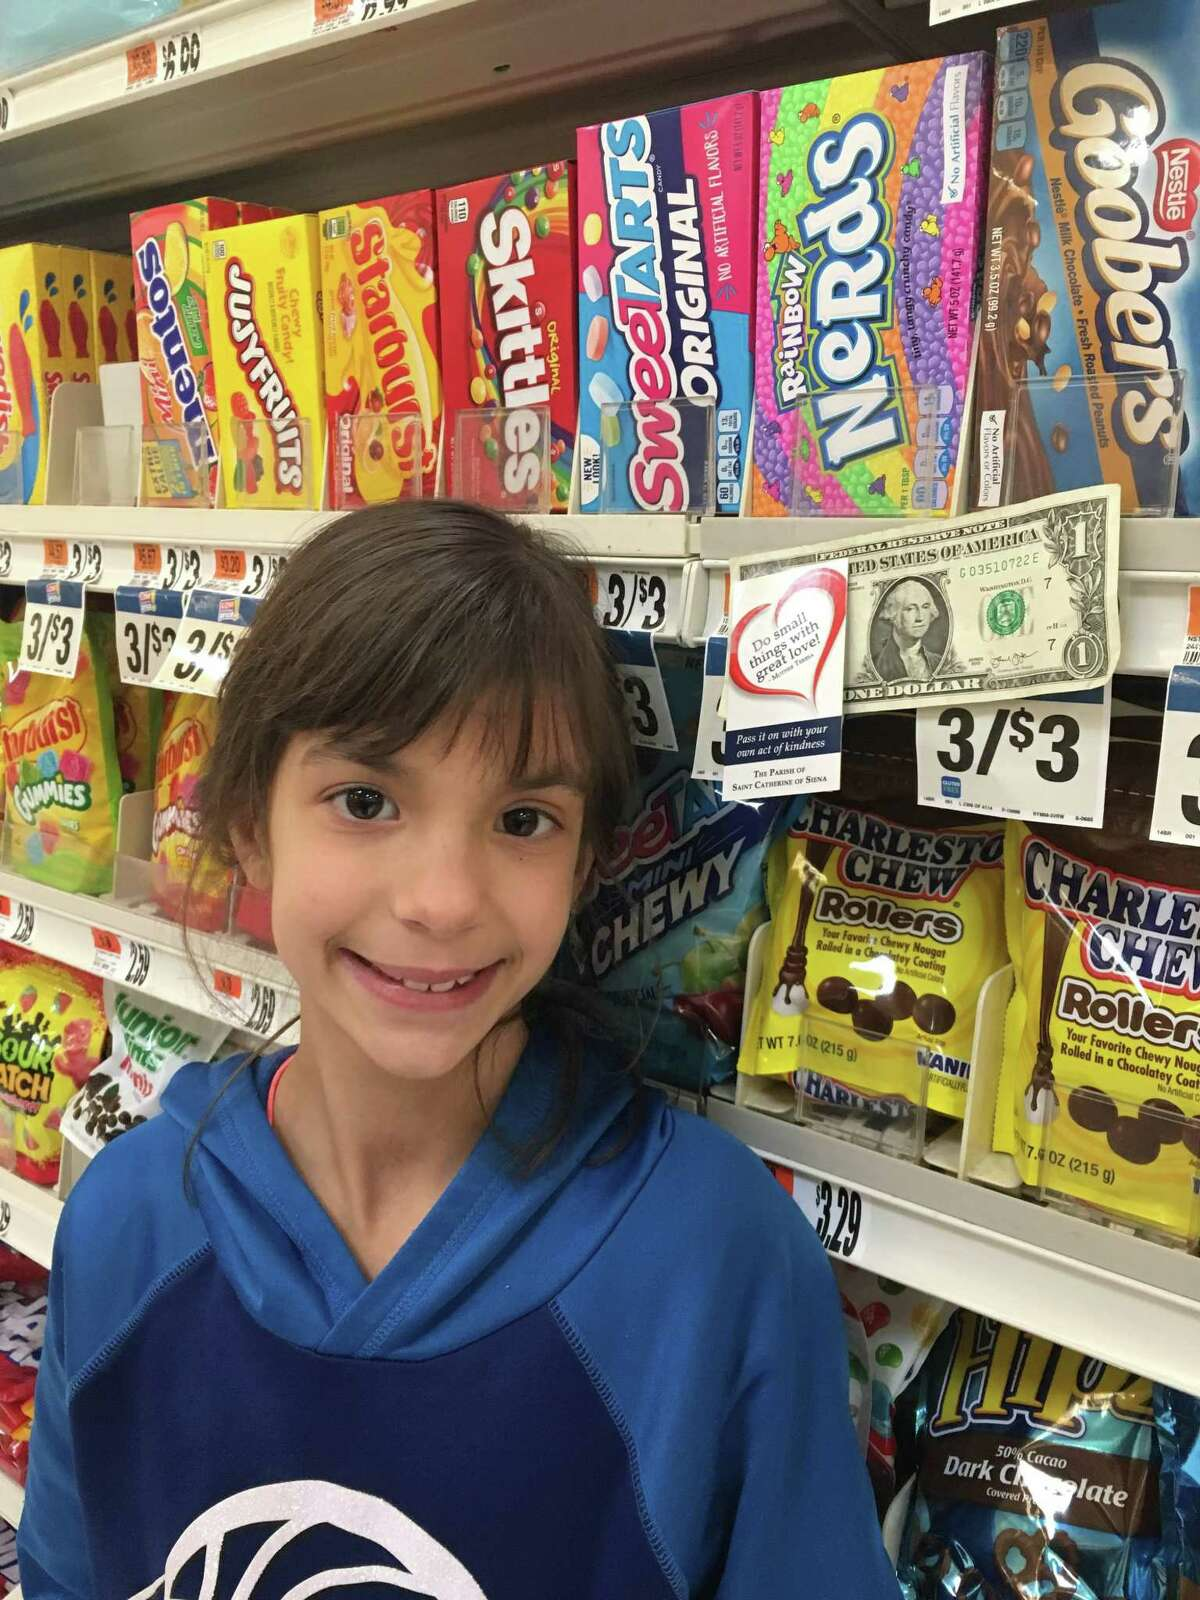 St. Catherine of Siena School 7th grader Siena, leaves $1 in the candy aisle at Stop & Shop with the intention that it brightens someone's day.